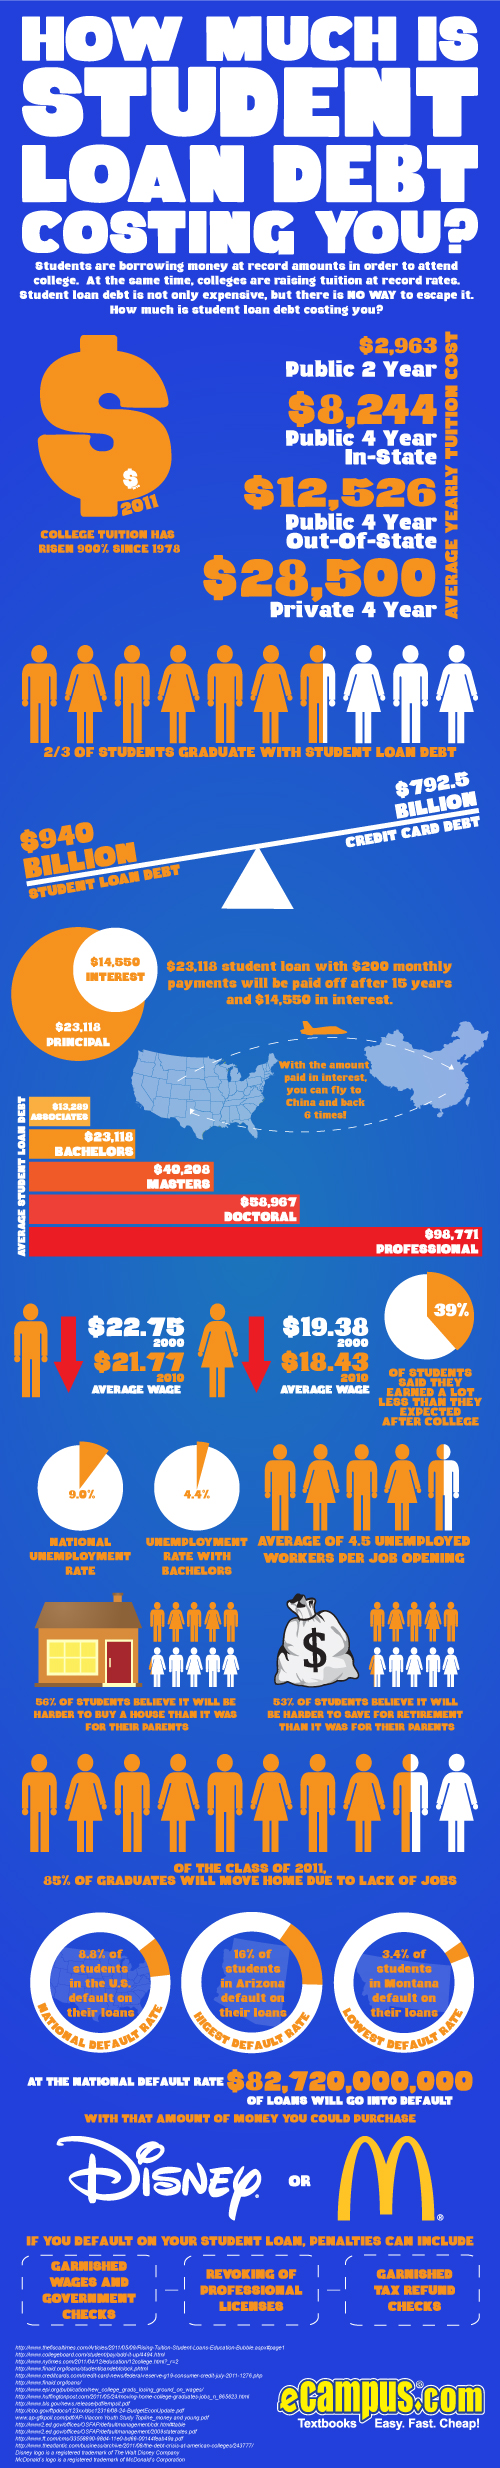 08 student_debt_infographic3